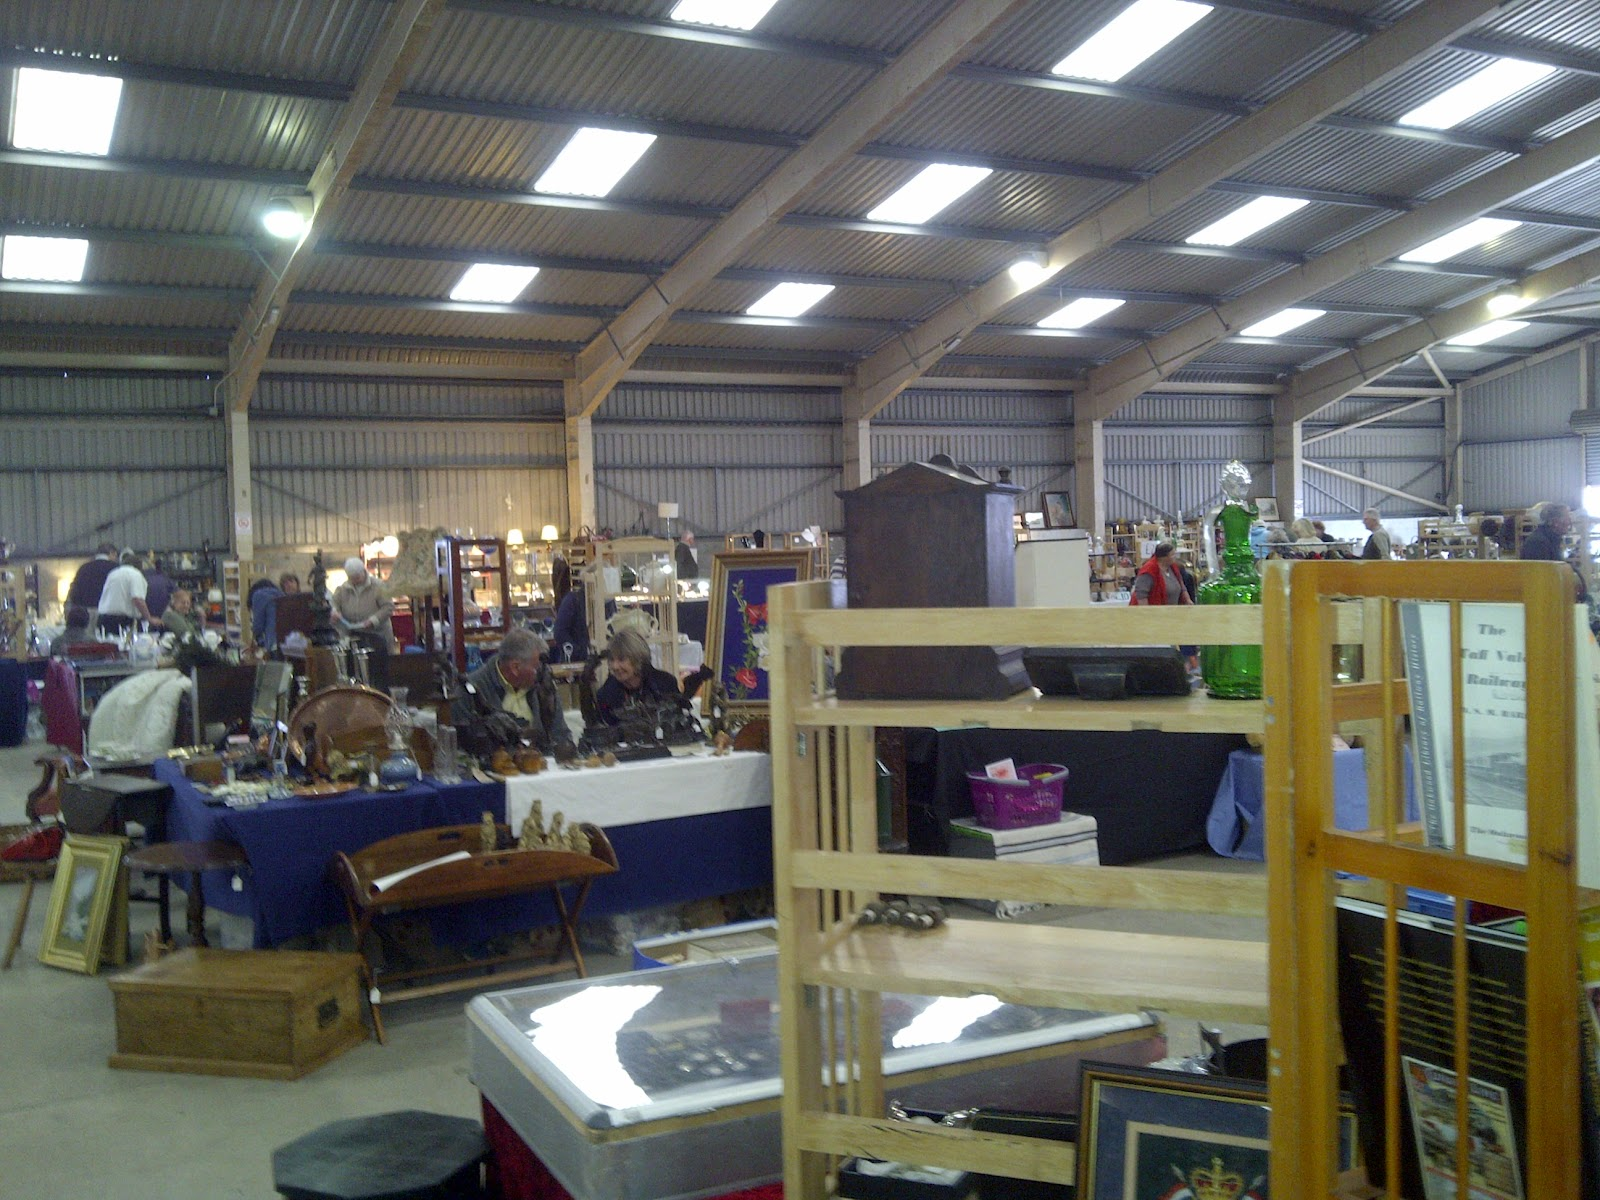 Fusion inspire journey through the creative mind for Fishing flea market near me